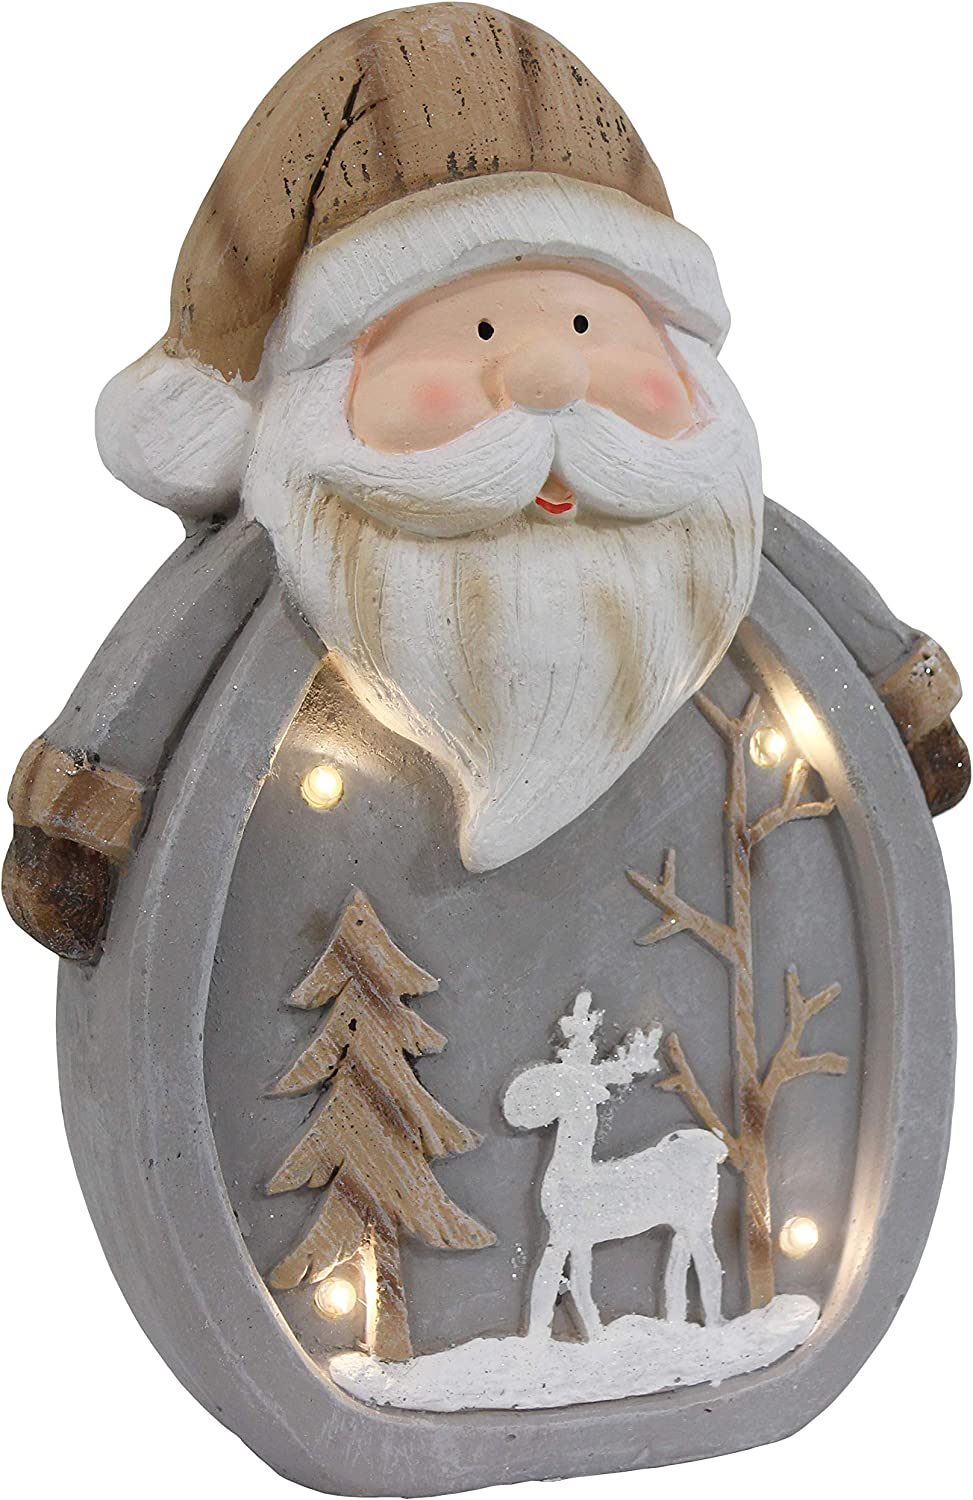 Sunnydaze Santa Claus Indoor Christmas Decoration with LED Lights - Holiday Winter Lighted Statue Figurine for Table, Fireplace Mantle and Shelf - Battery Operated Pre-Lit Accent - 14-Inch